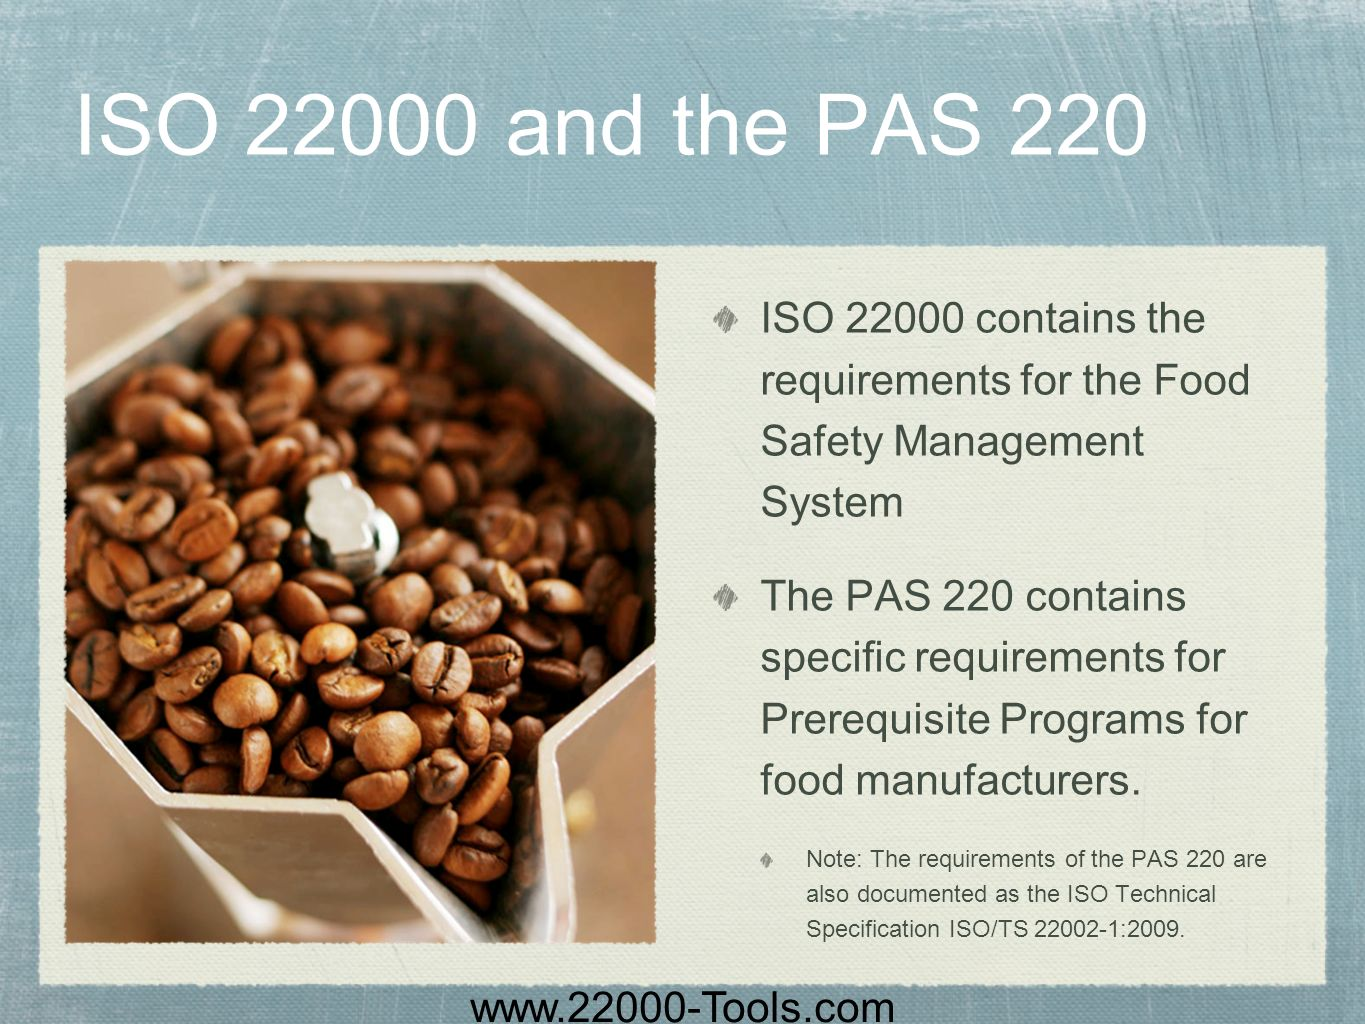 ISO and the PAS 220 ISO contains the requirements for the Food Safety Management System.